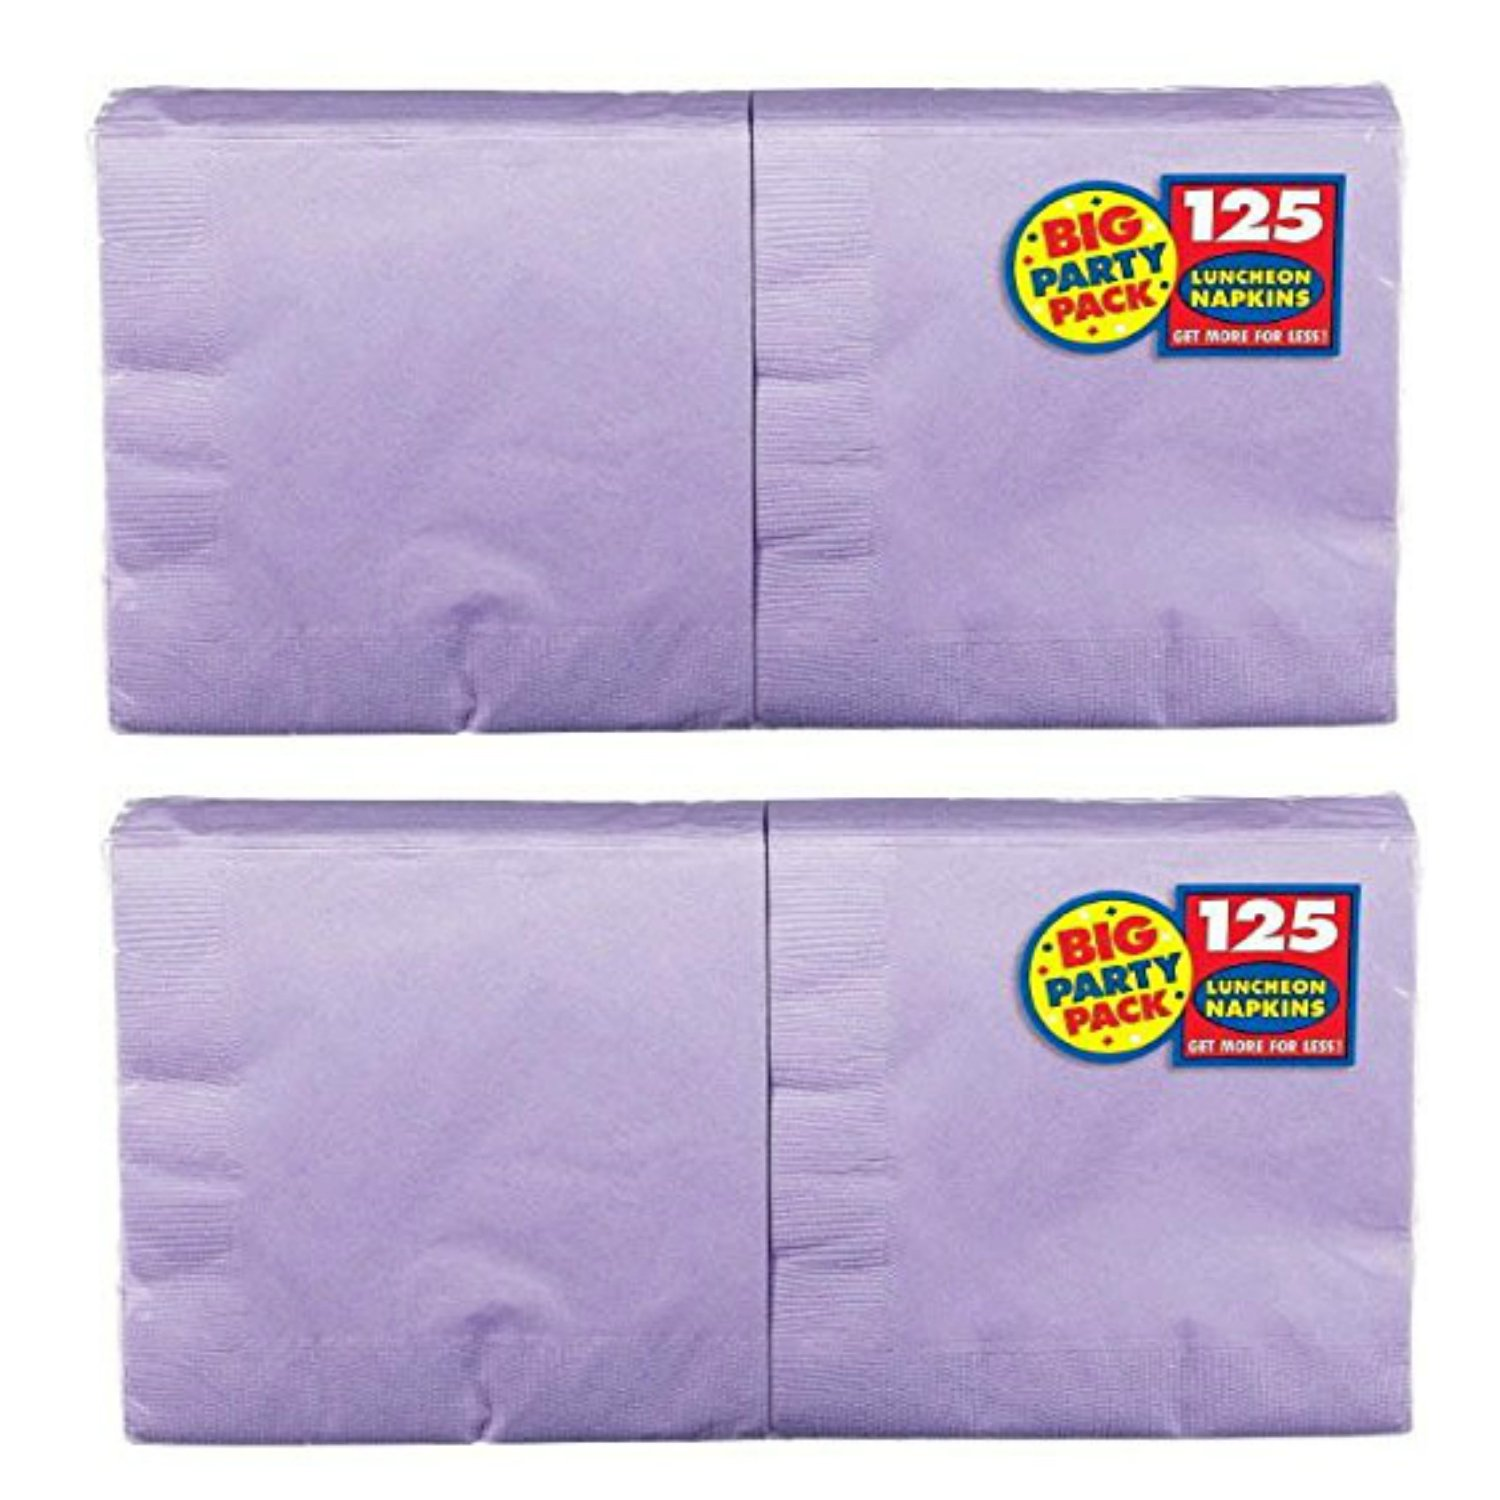 New Purple Big Party Pack - Lunch Napkins, 125 Count, 13in X 13in, 2 ply Amscan 610013.106